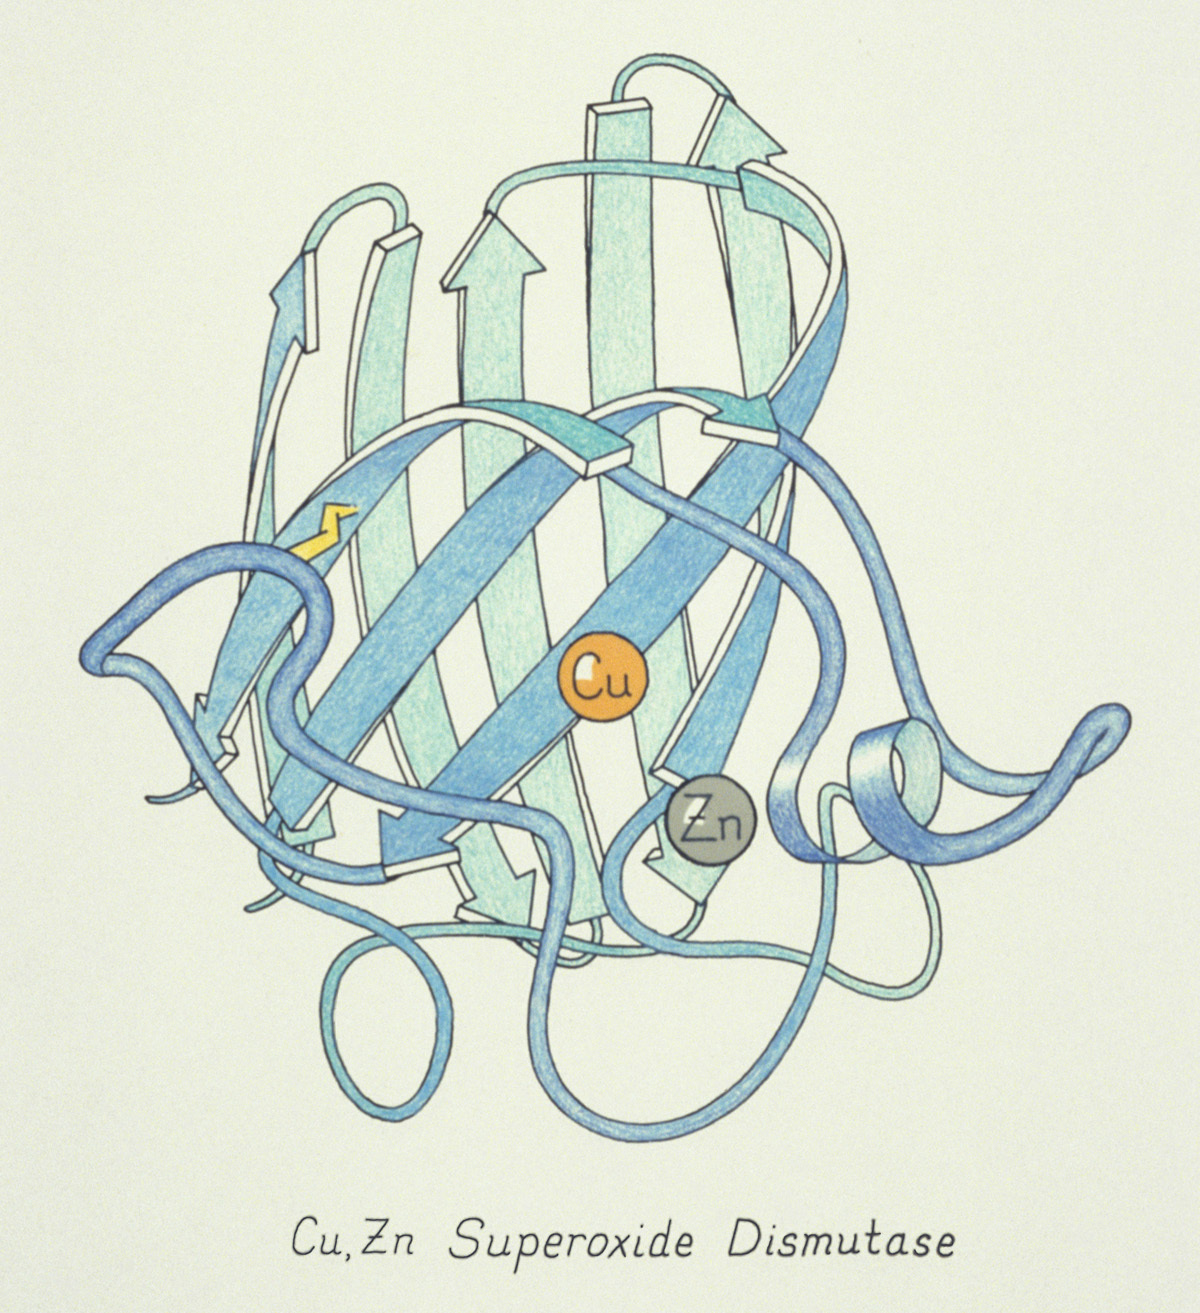 One of the original ribbon drawings done by Jane S. Richardson in 1981